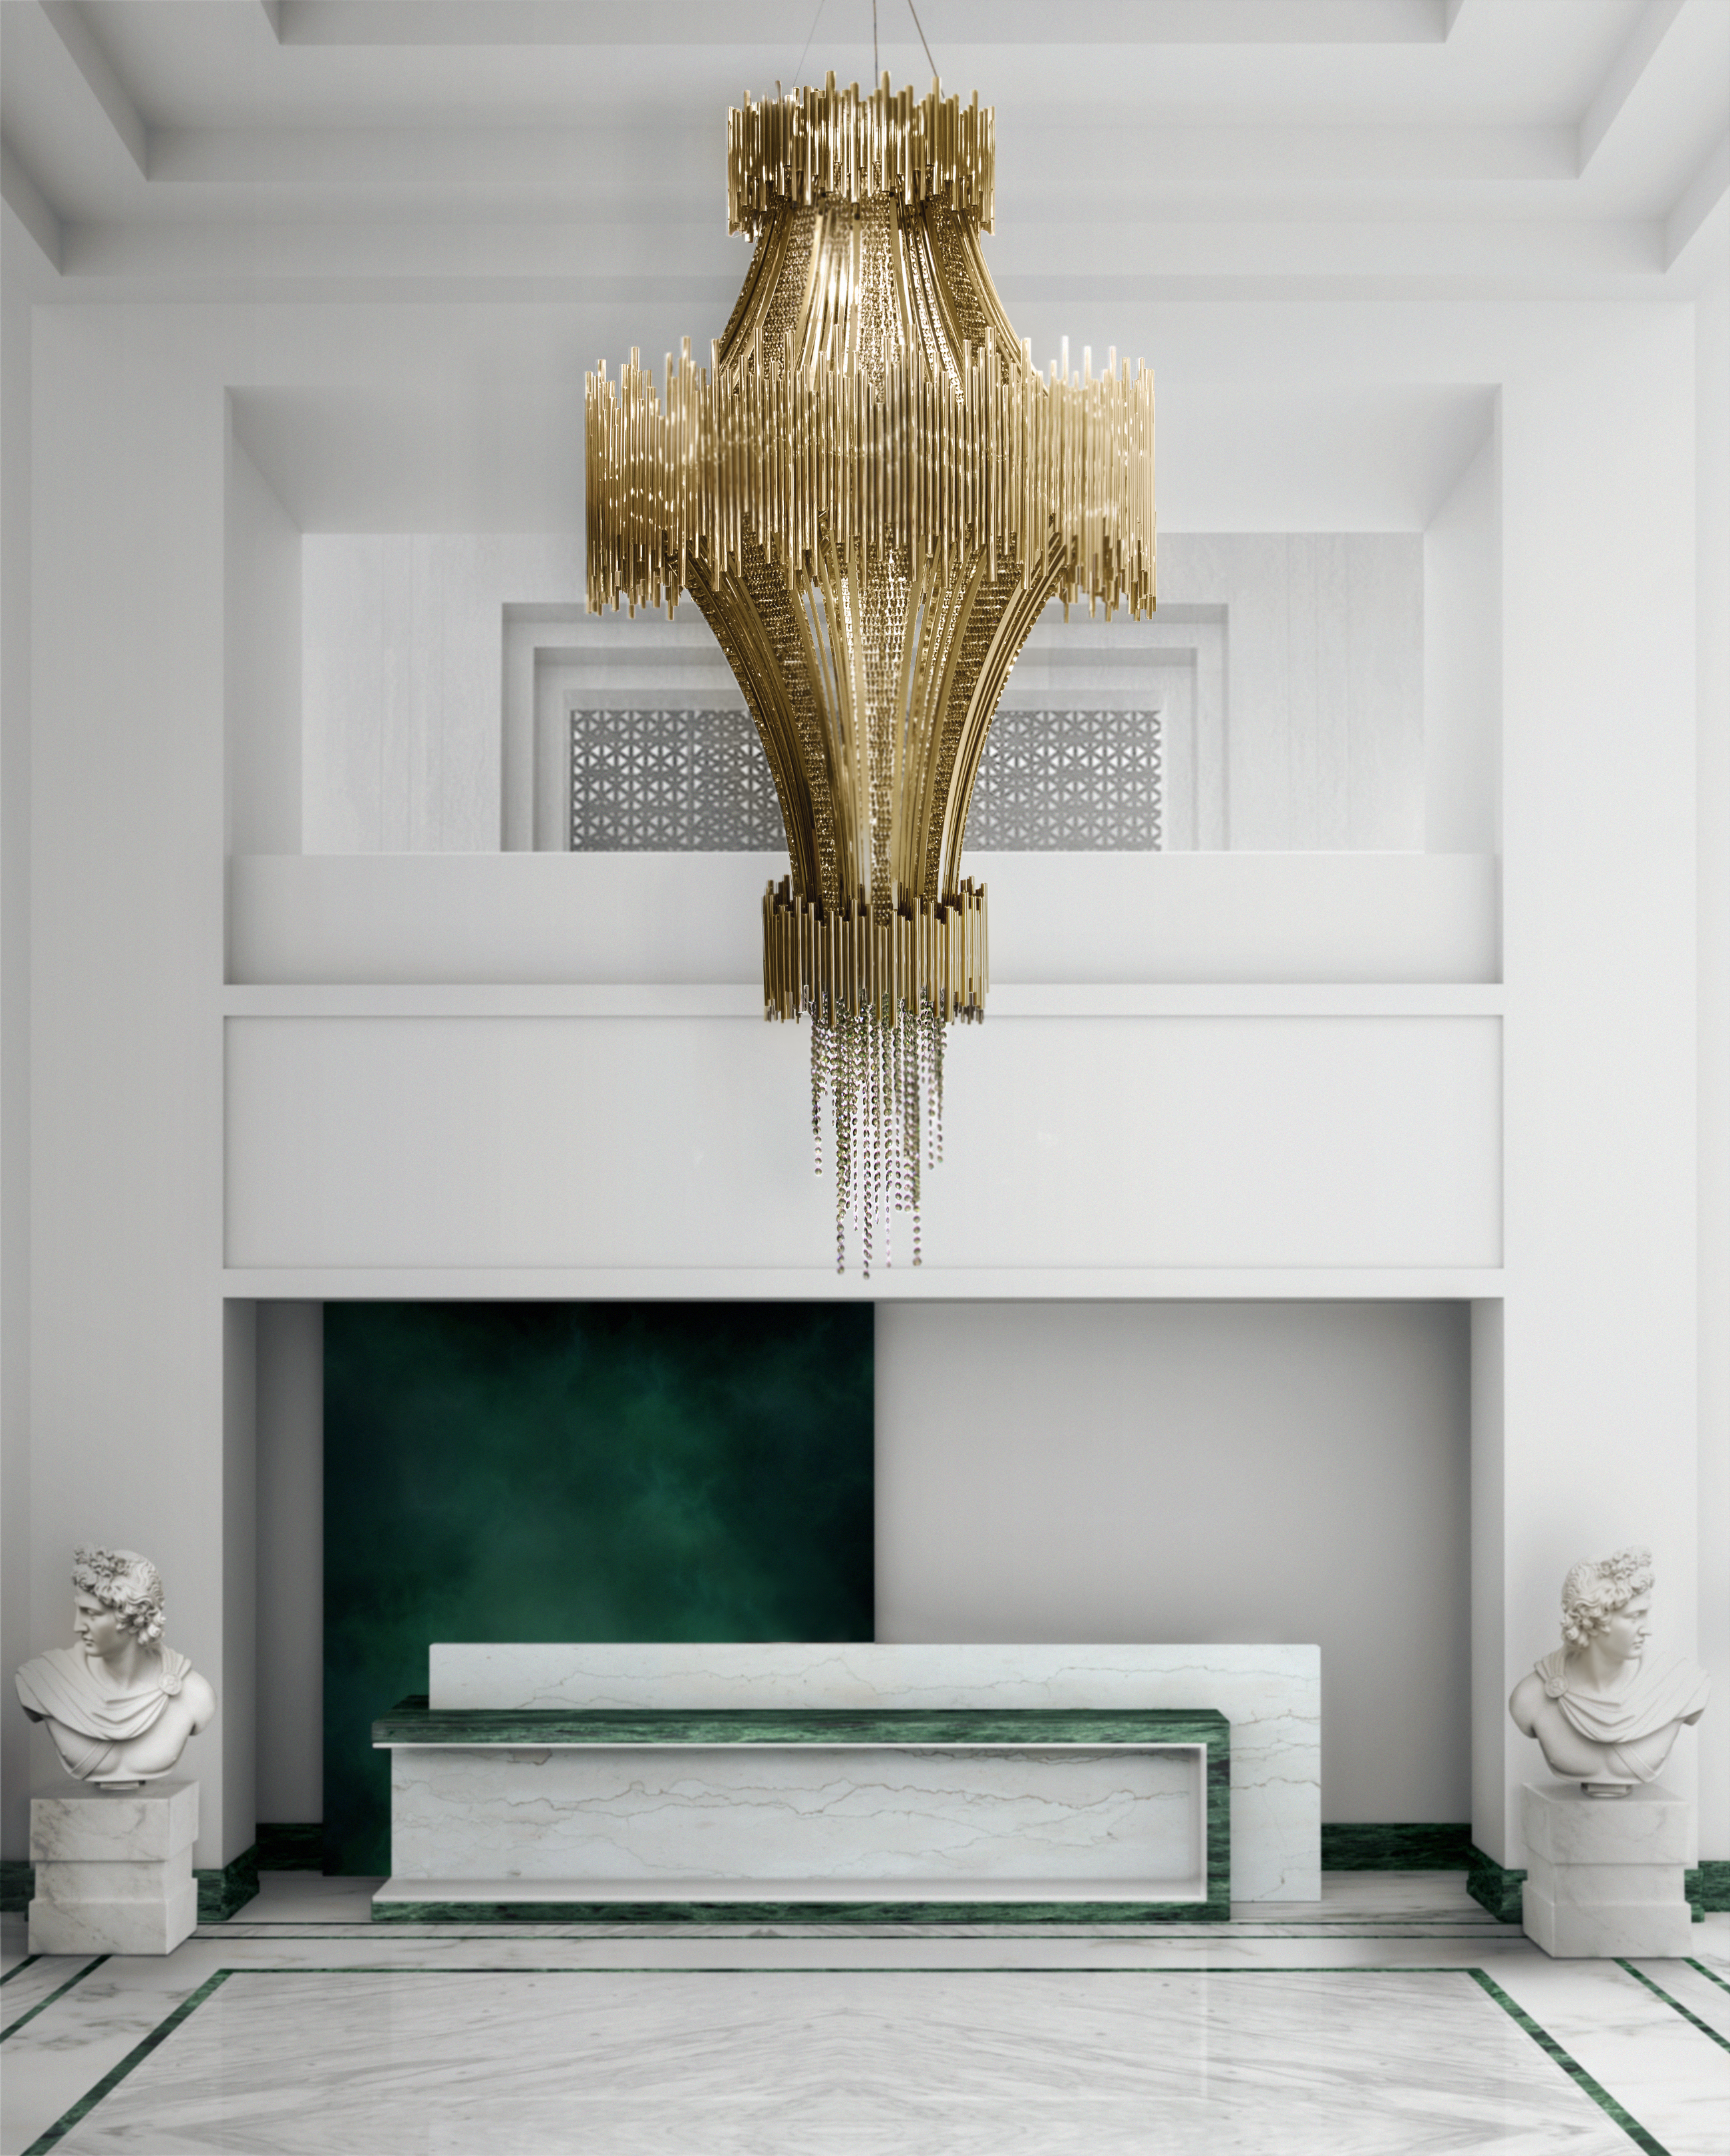 Scala Luxury Chandeliers luxury chandeliers Luxury Chandeliers: Luxxu's selection for splendor in any scenario Scala Chandelier